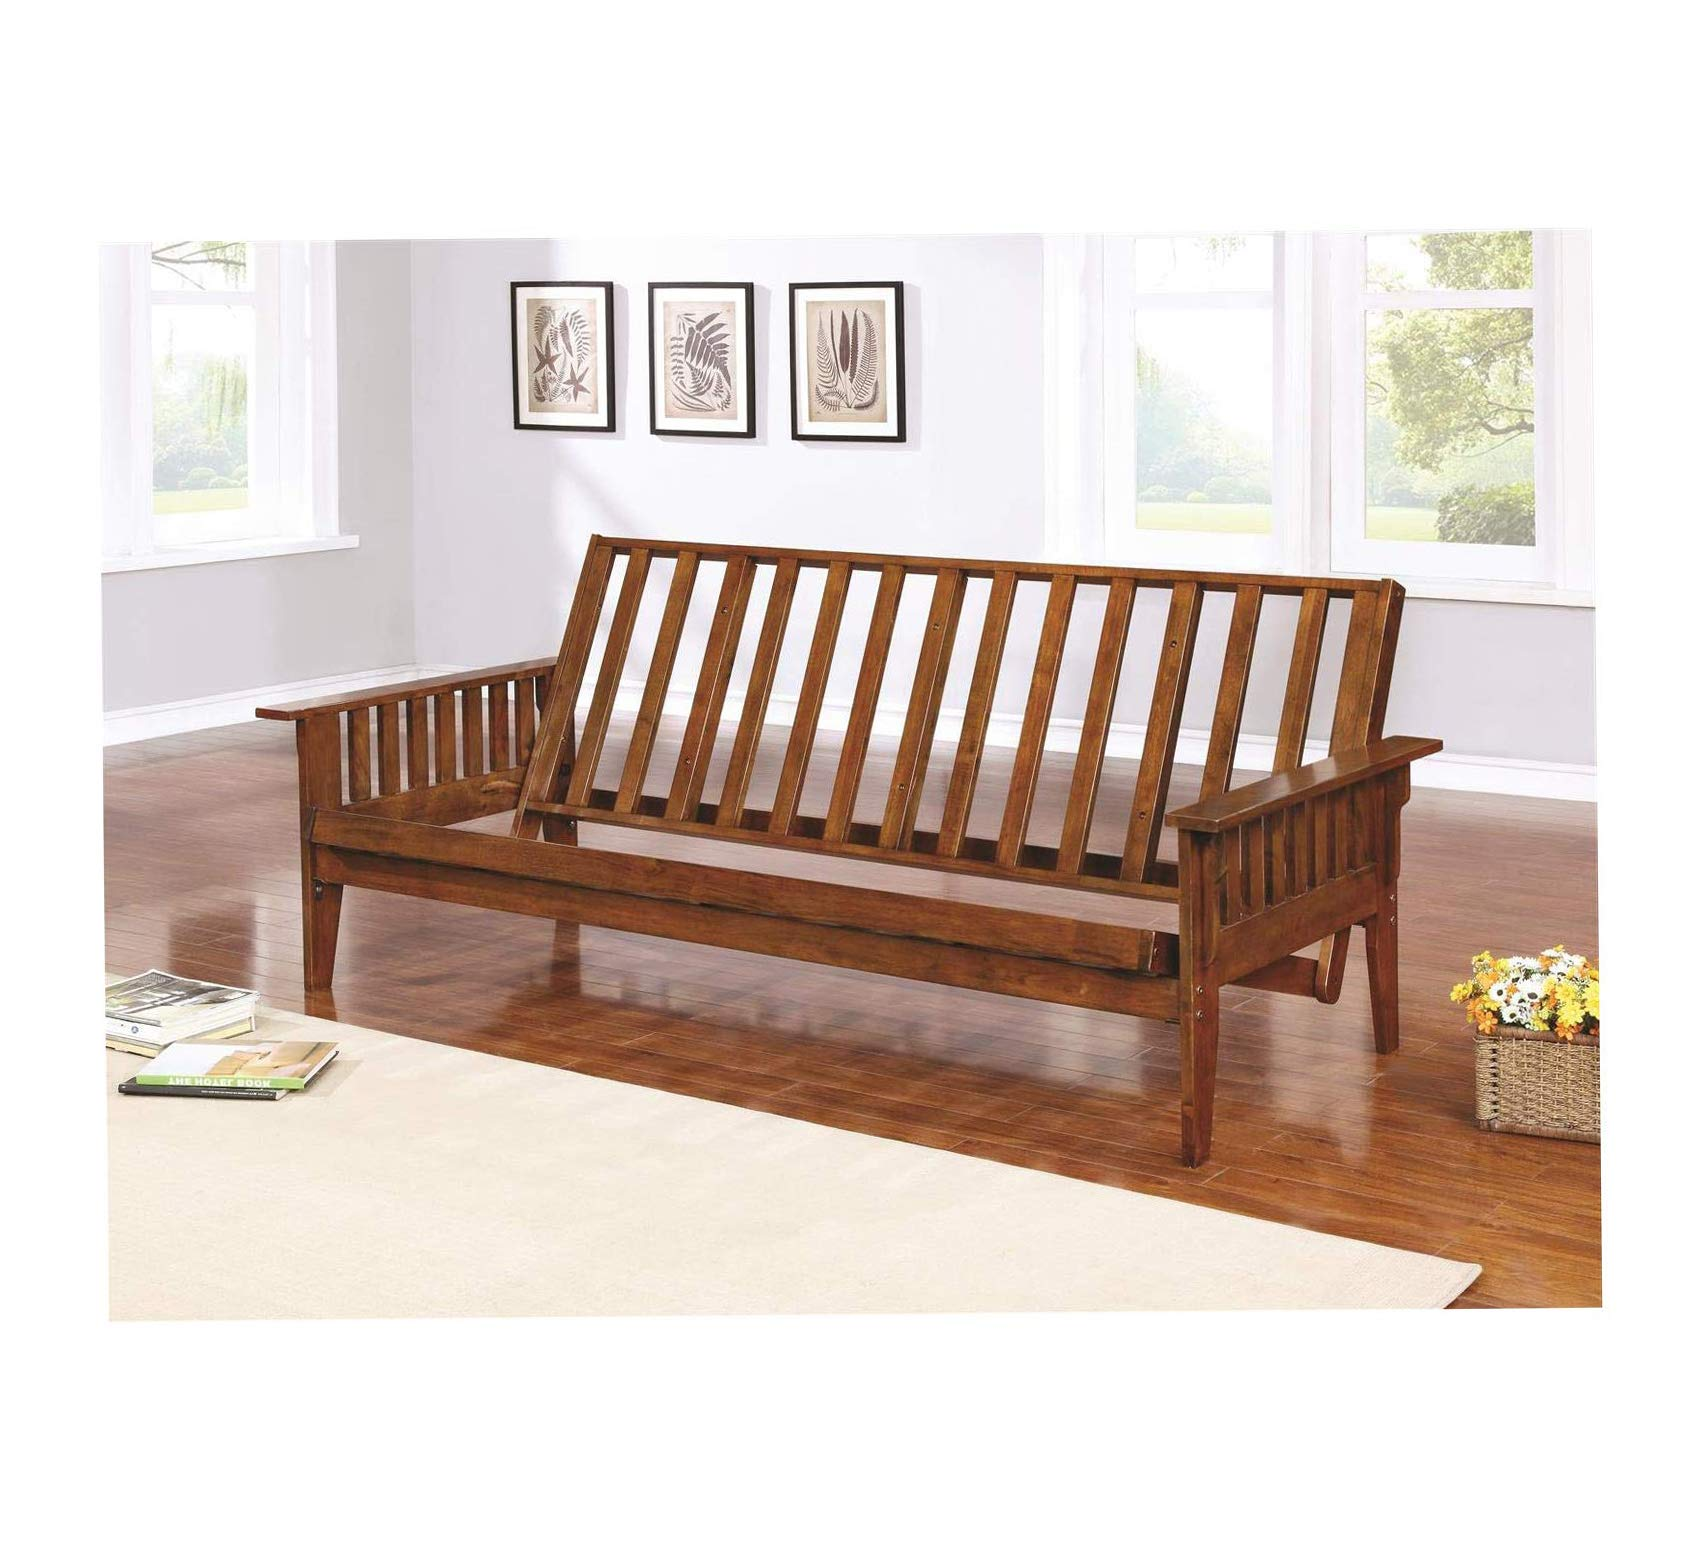 Wood & Style Home Futon Frame with Slat Side Detail Dirty Oak Office Décor Studio Living Heavy Duty Commercial Bar Café Restaurant by Wood & Style